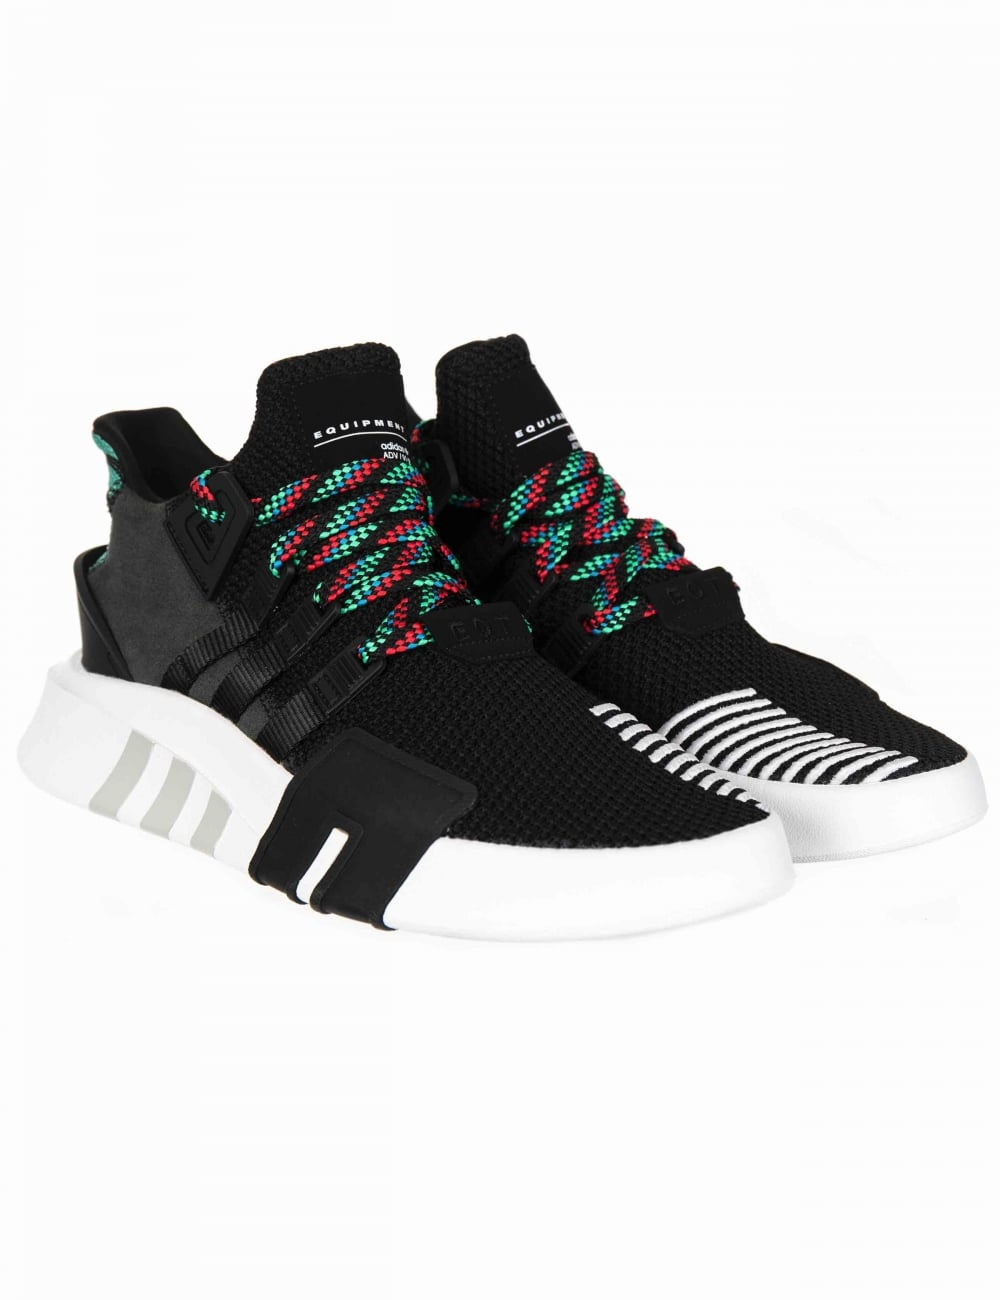 new styles 16d04 947d8 EQT Bask ADV Shoes - Core Black/Sub Green